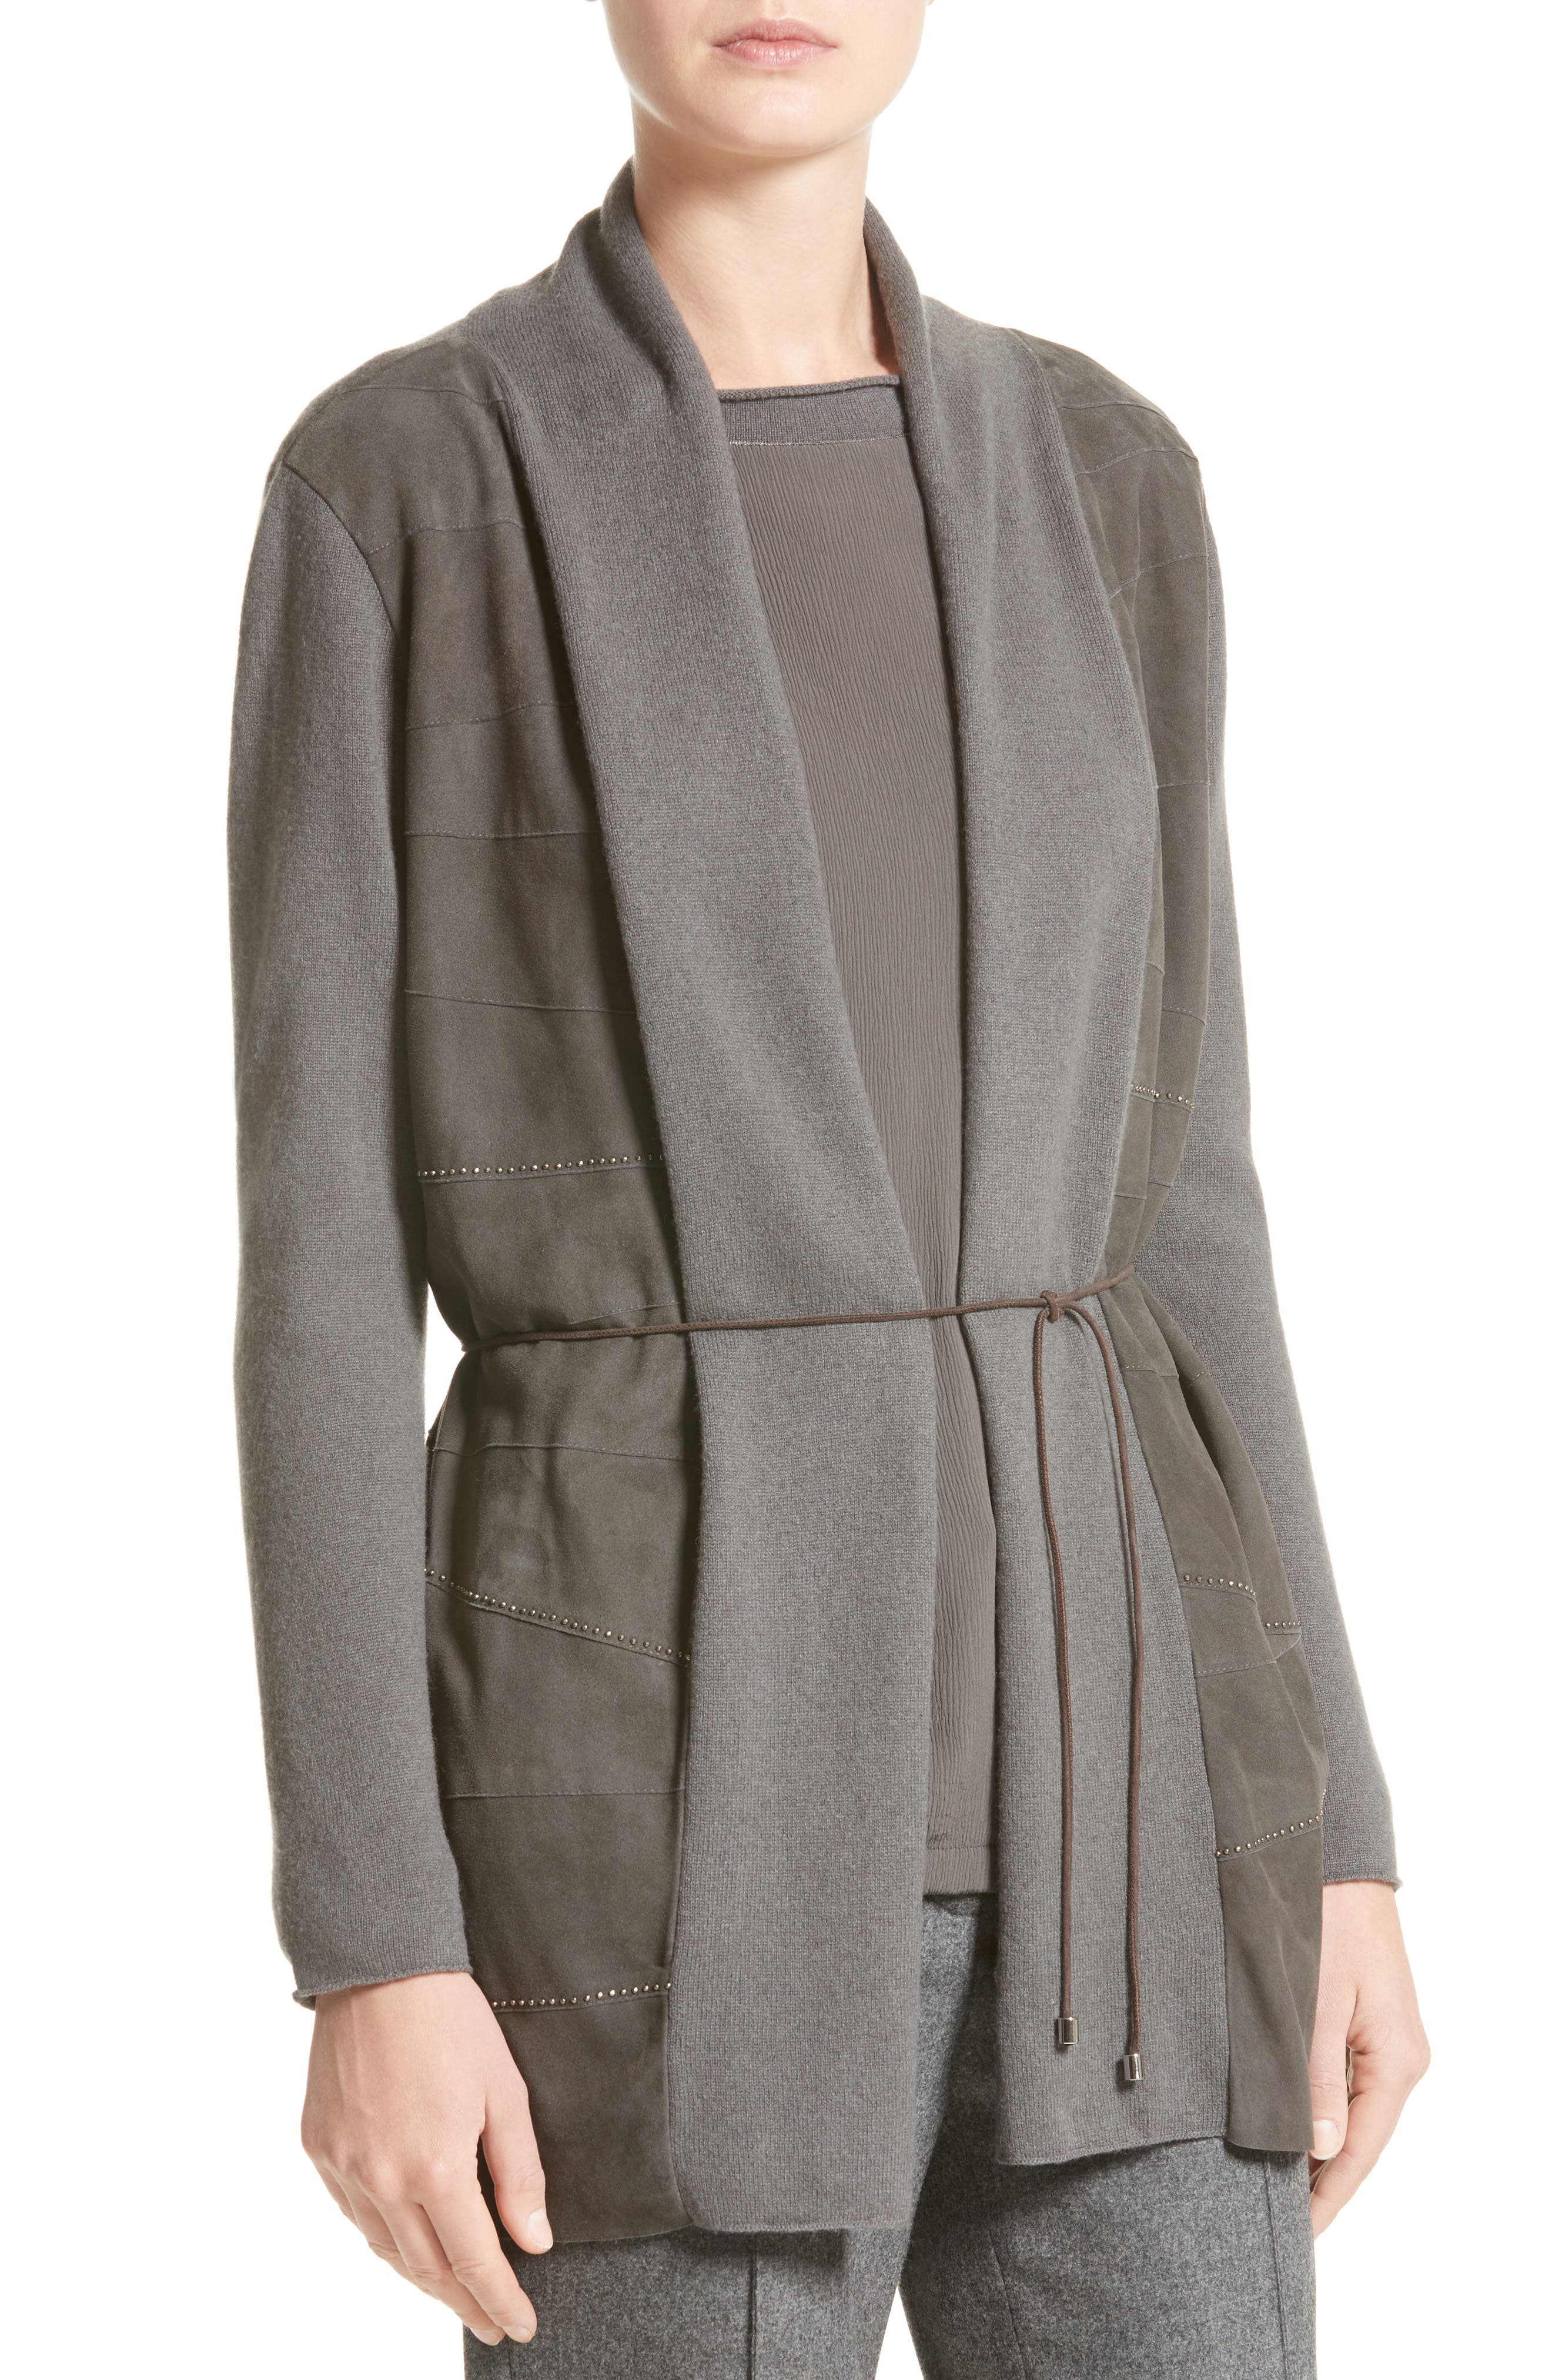 Suede Trim Wool, Silk & Cashmere Cardigan,                             Alternate thumbnail 7, color,                             Slate